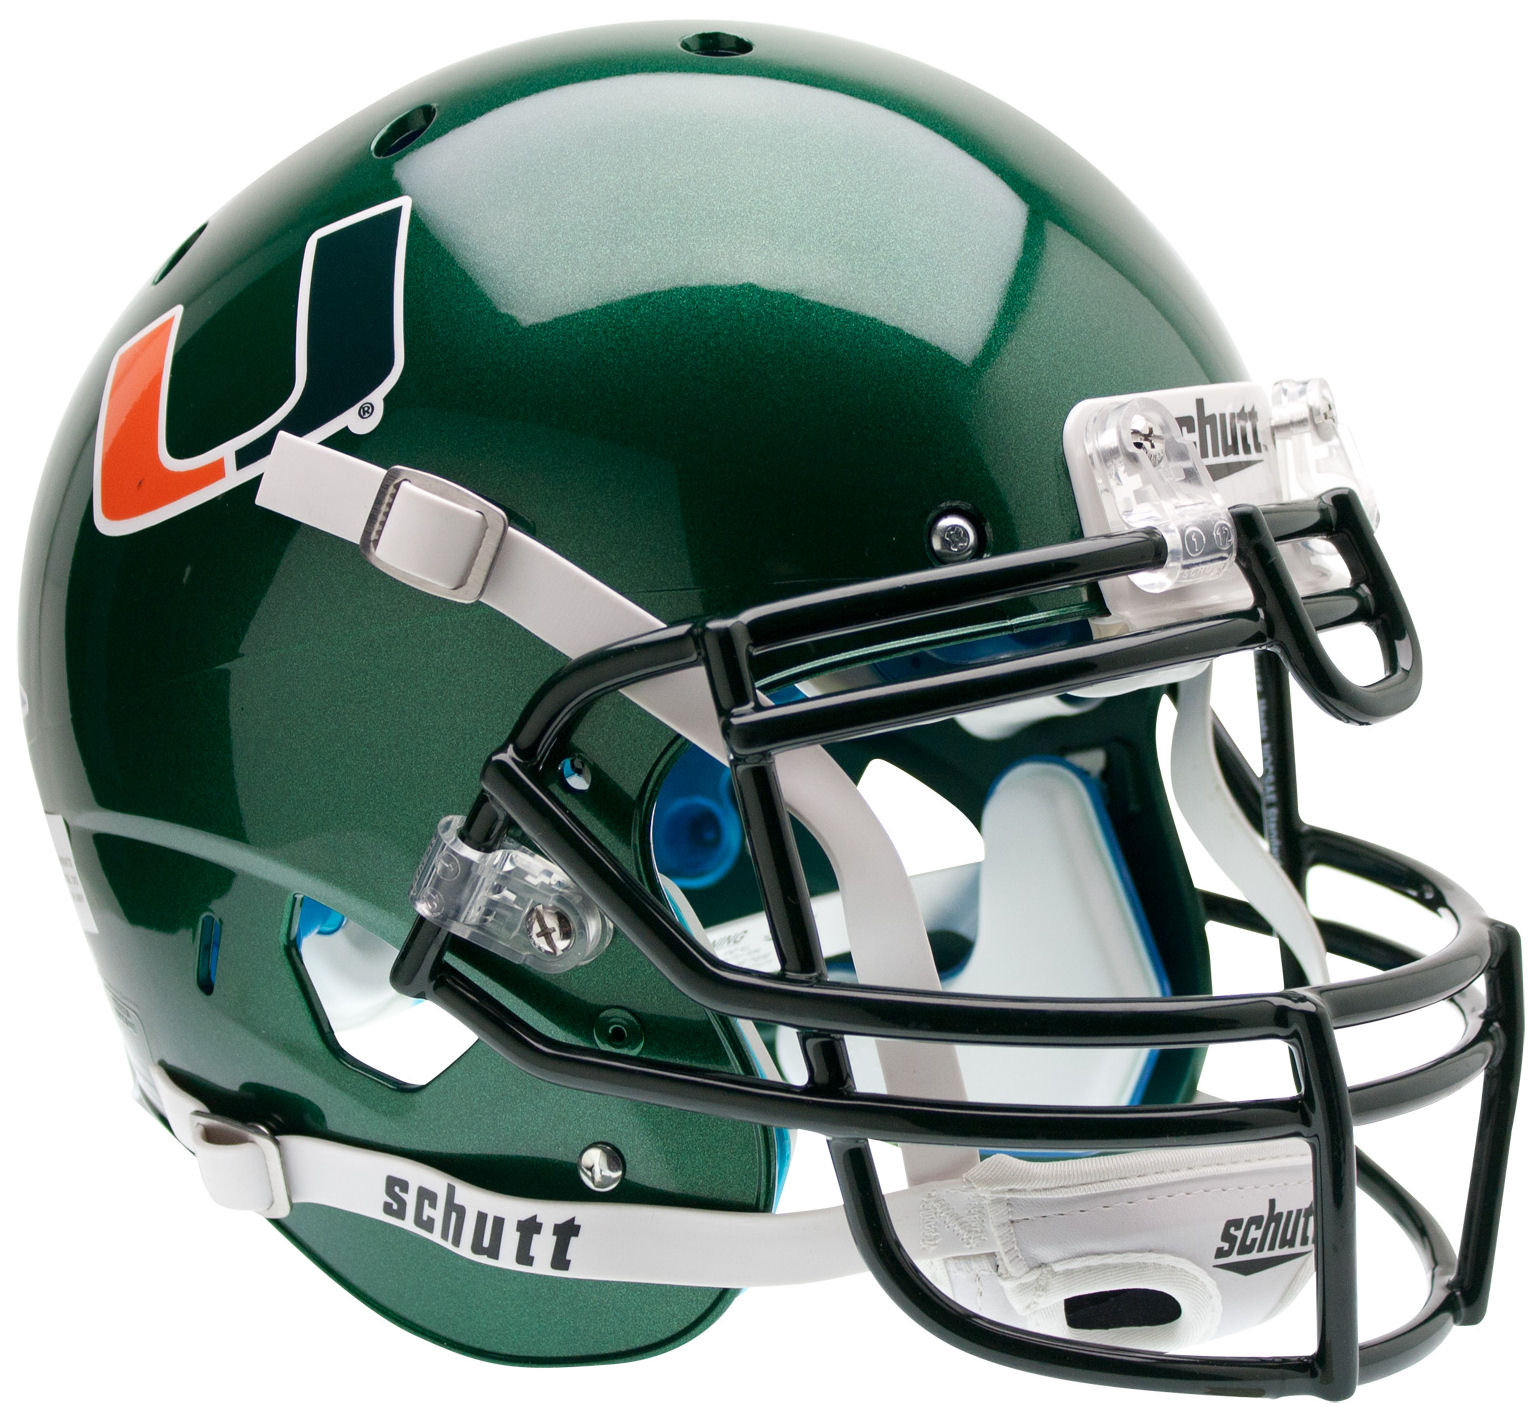 Miami Hurricanes Authentic College XP Football Helmet Schutt <B>Green</B>